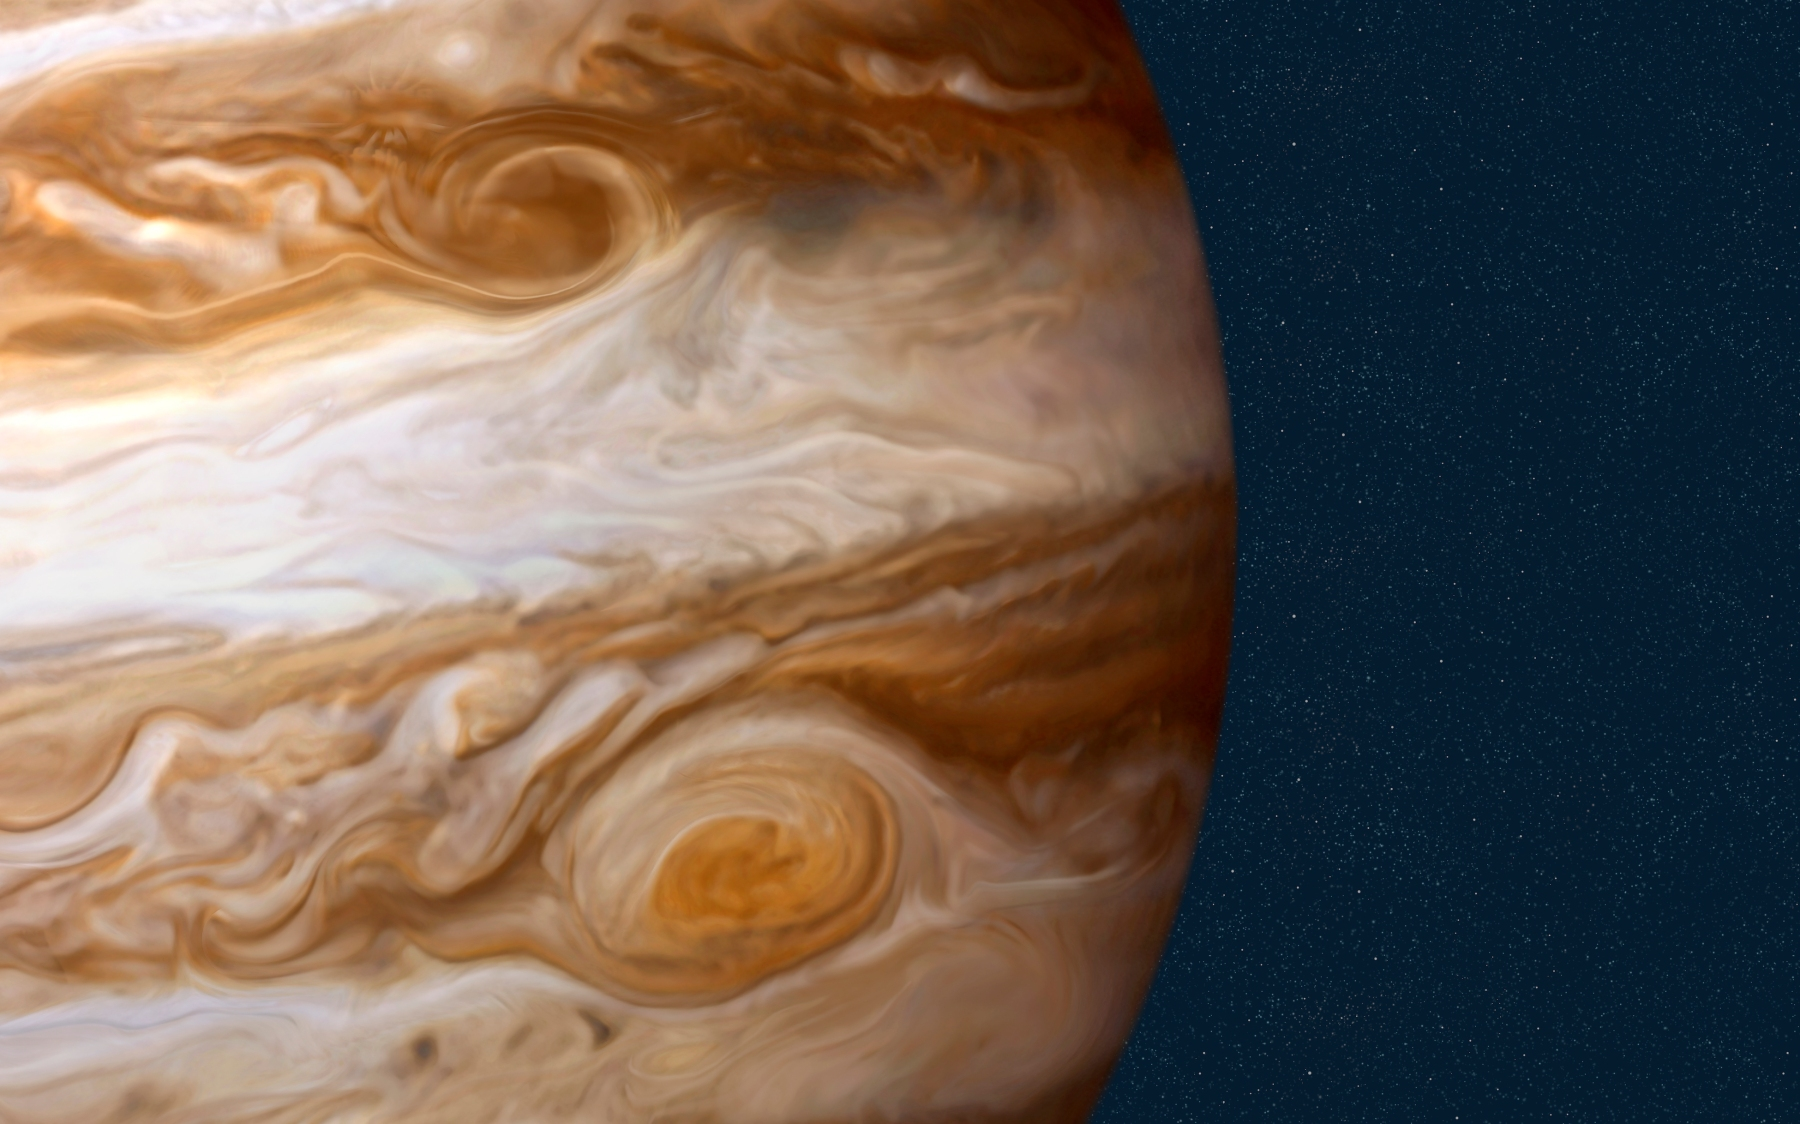 Jupiter, The largest planet in the solar system is 1,400 times the size of Earth, and its mass is 2.5 times that of all of the other planets combined. Jupiter could almost have become a star, since its elements are similar to the SunÍs: 90% hydrogen and 10% helium, with traces of methane, water, ammonia, and rocky dust. (Photo by: QAI Publishing/UIG via Getty Images)